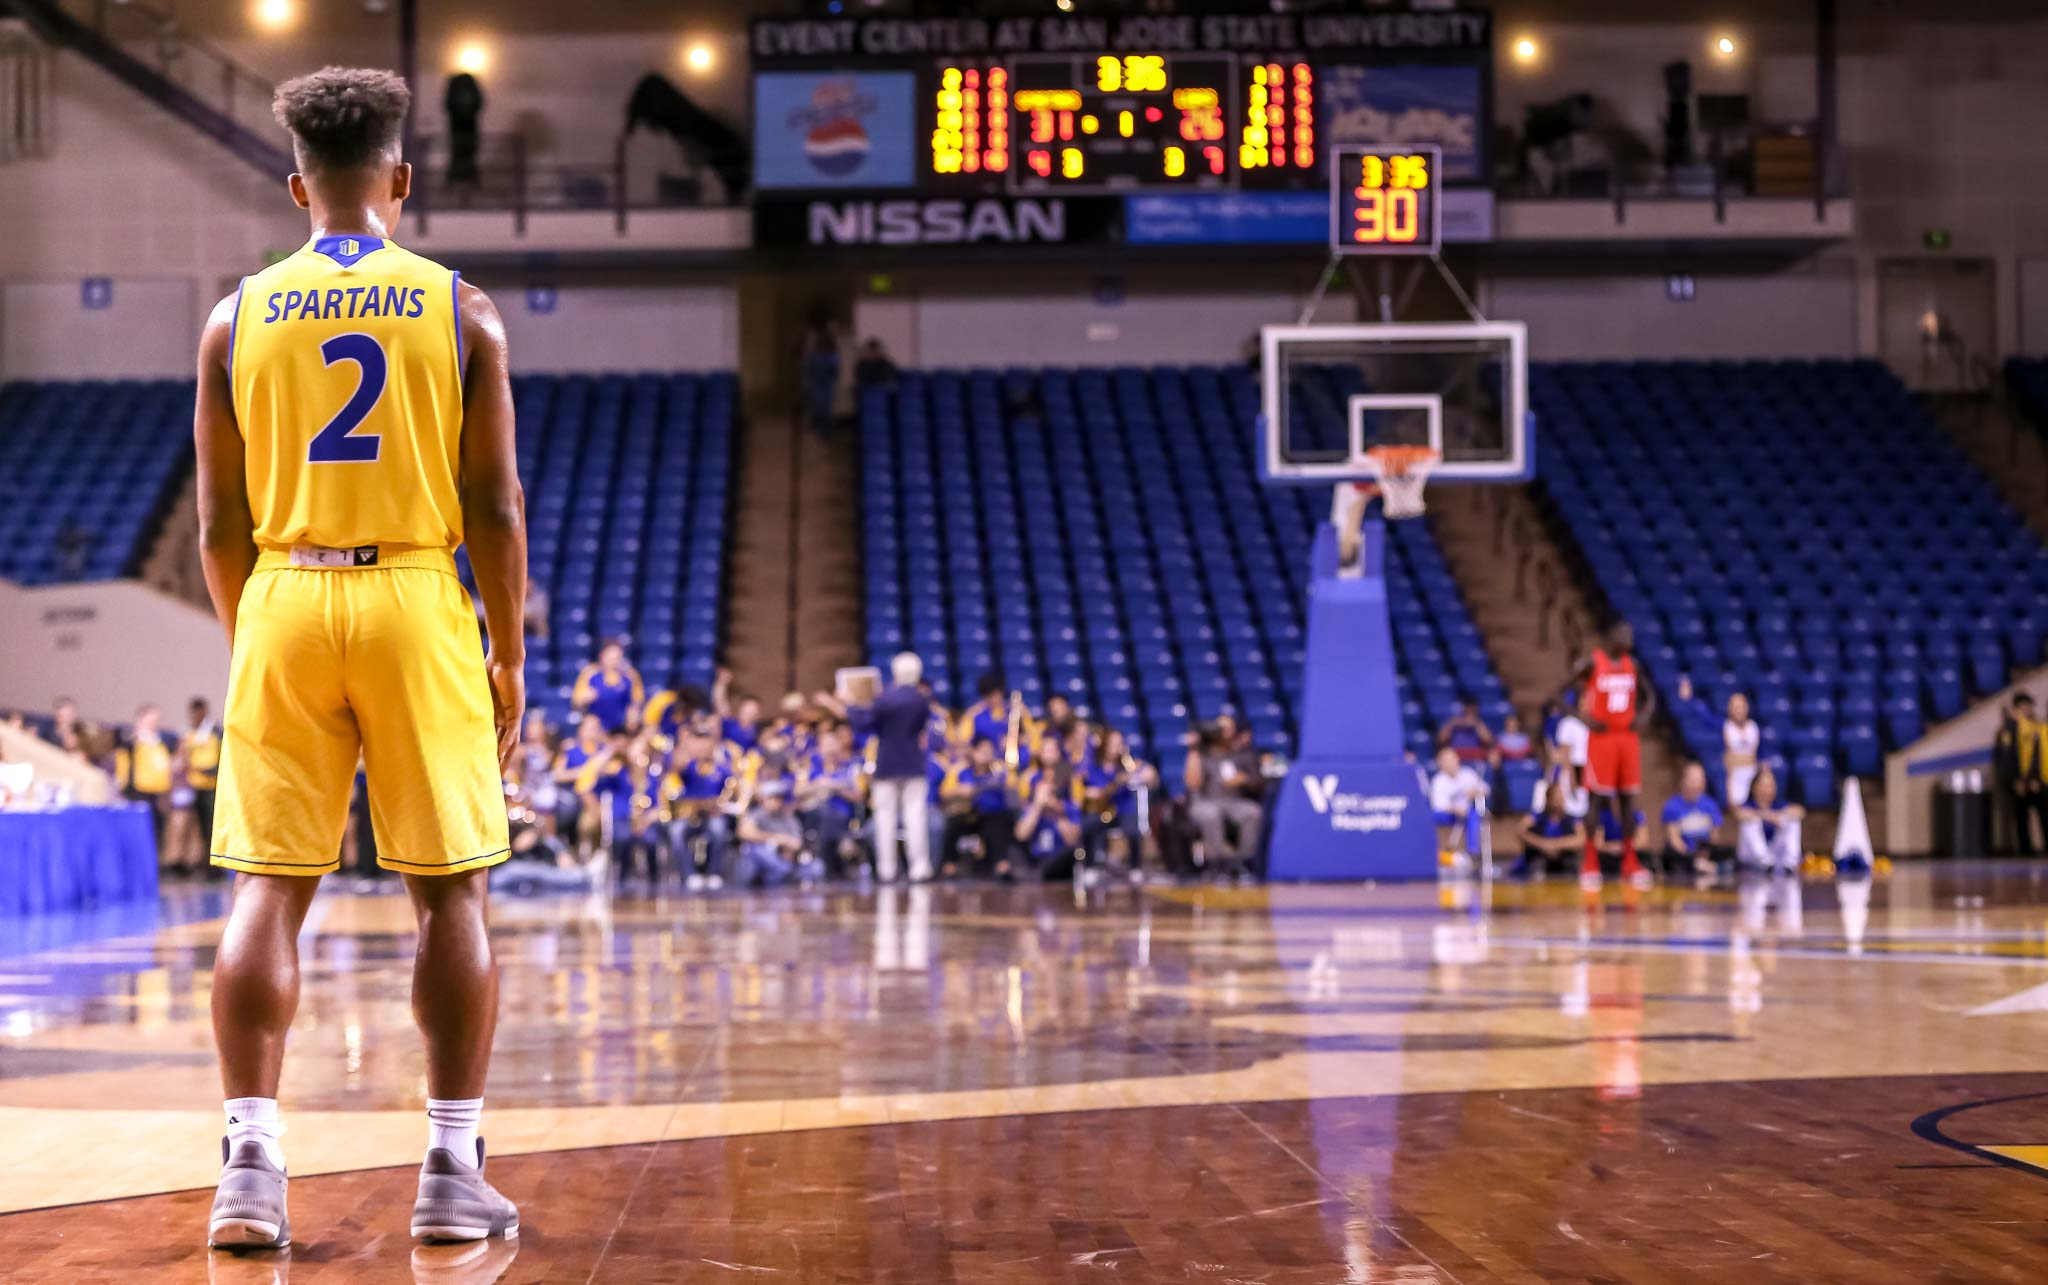 San Jose State Guard, Nai Carlisle, awaits play after a timeout vs. New Mexico State at the San Jose Event Center, February, 3, 2018